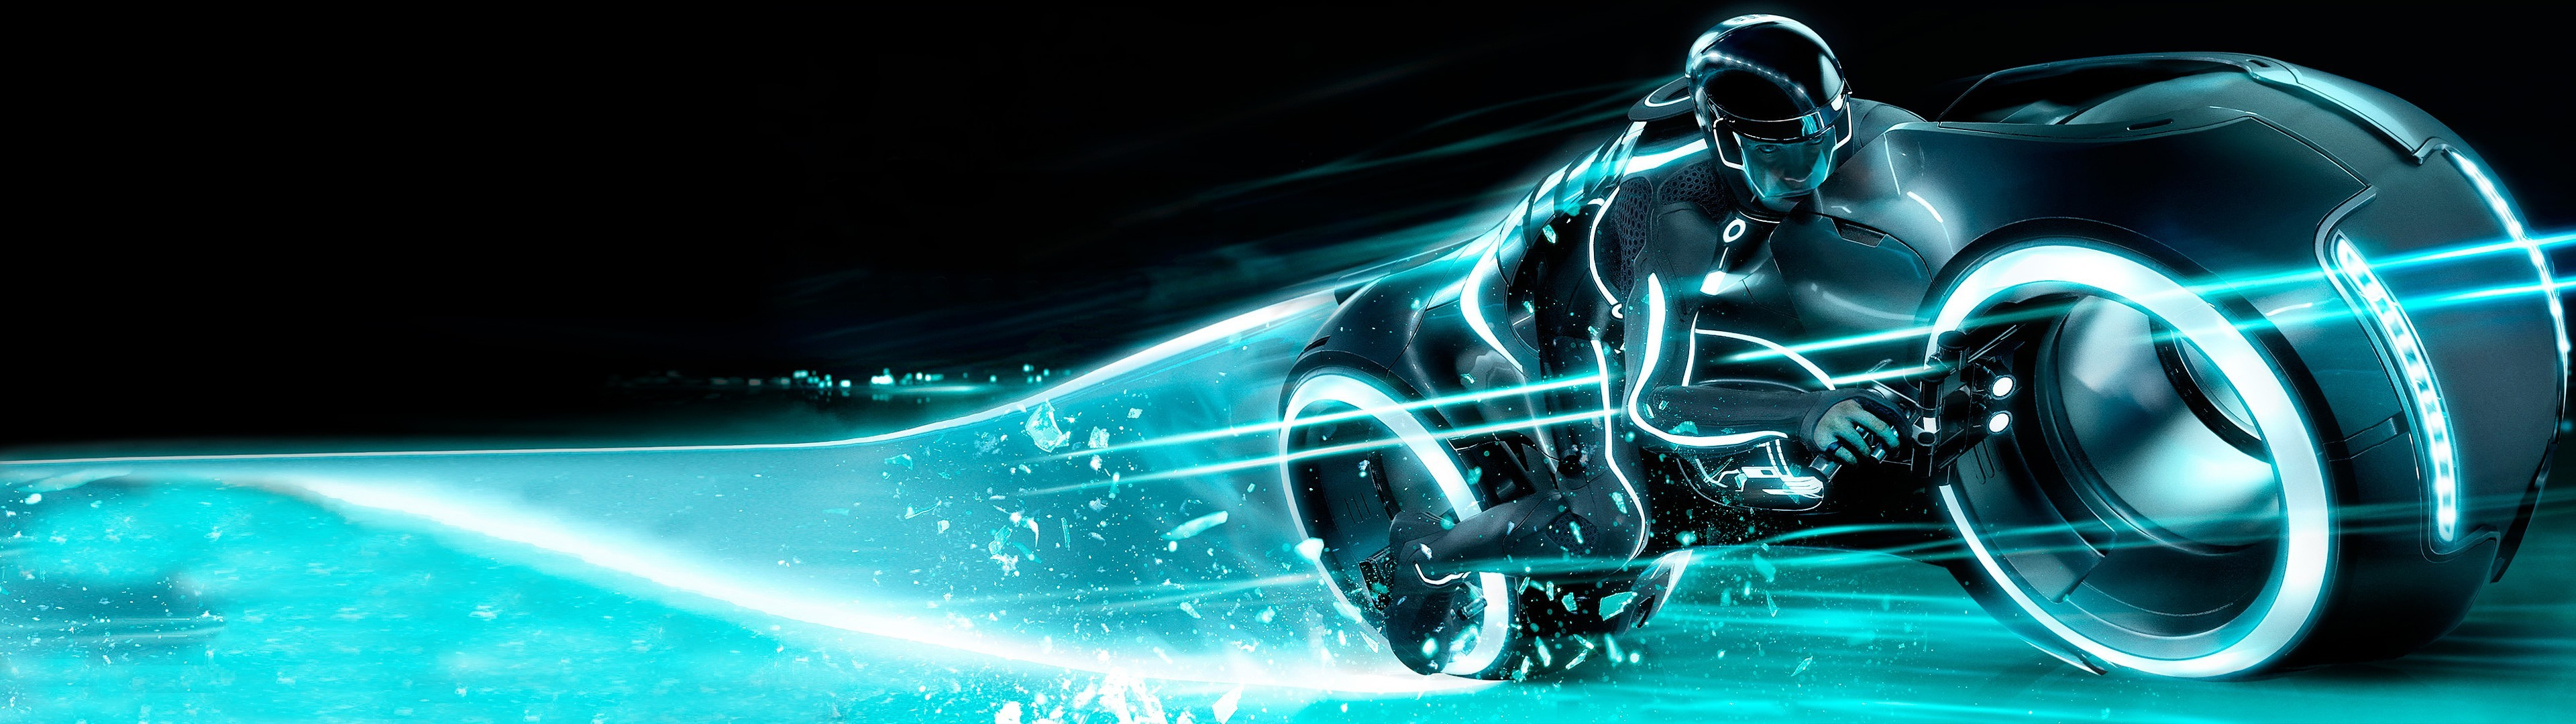 3840x1080 Tron Legacy TRON Wallpaper thestockmasters | HD Wallpapers | Pinterest |  Tron light cycle, Cycling and Wallpaper